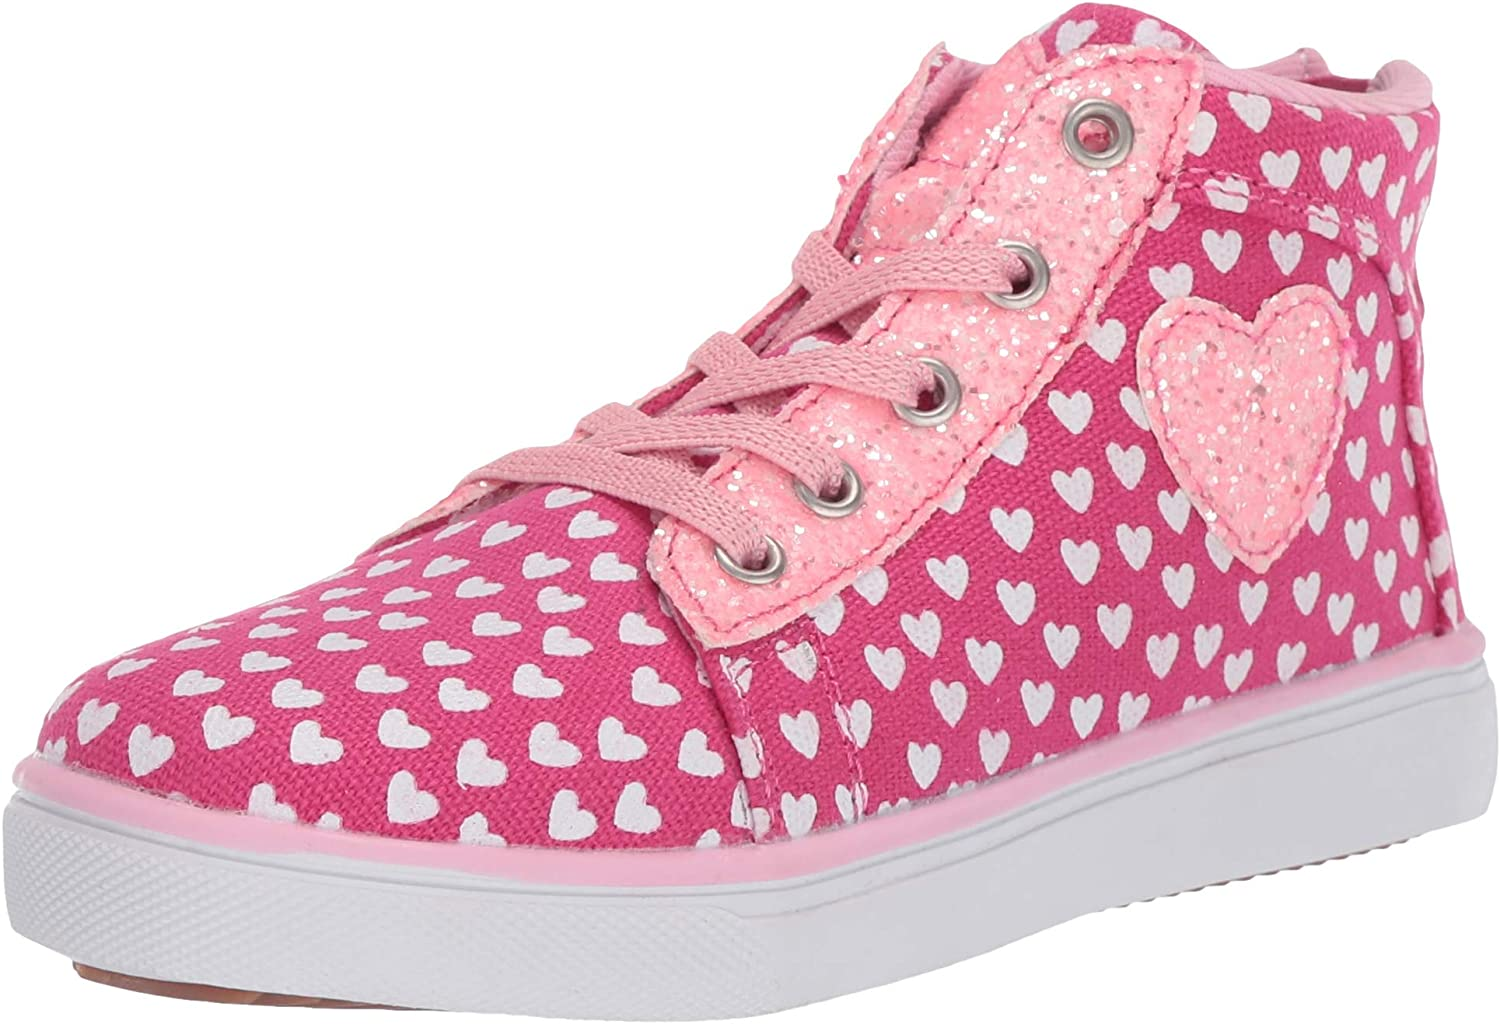 Hatley excellence Girl's High Surprise price Top Accessory Set Sneakers Winter